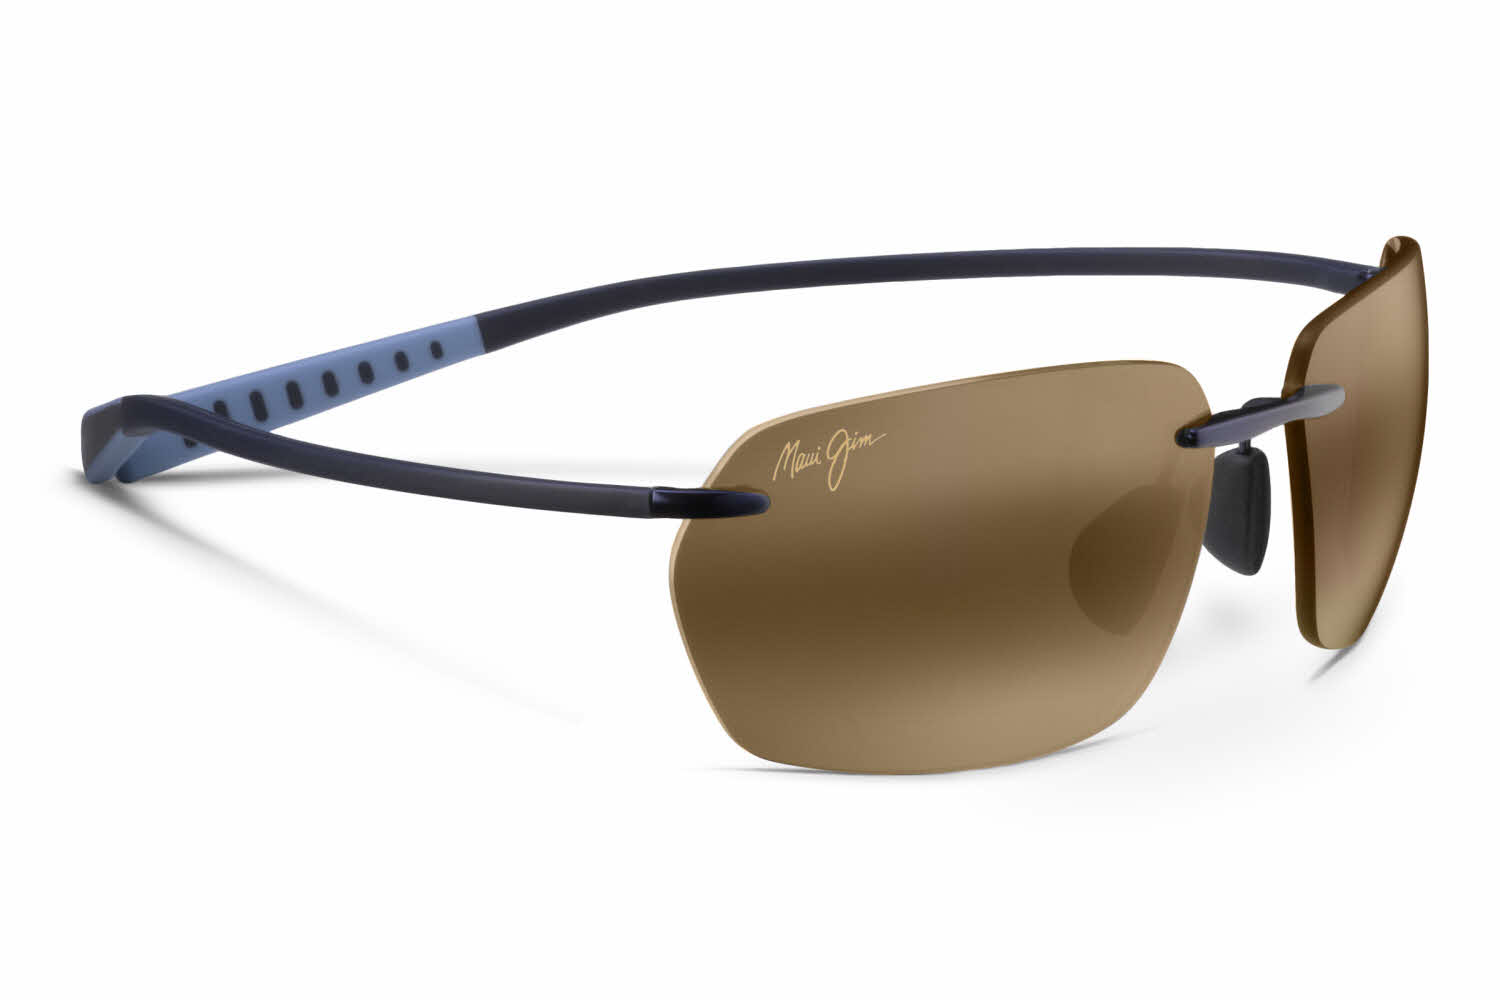 Maui Jim Alakai-743RX Prescription Sunglasses